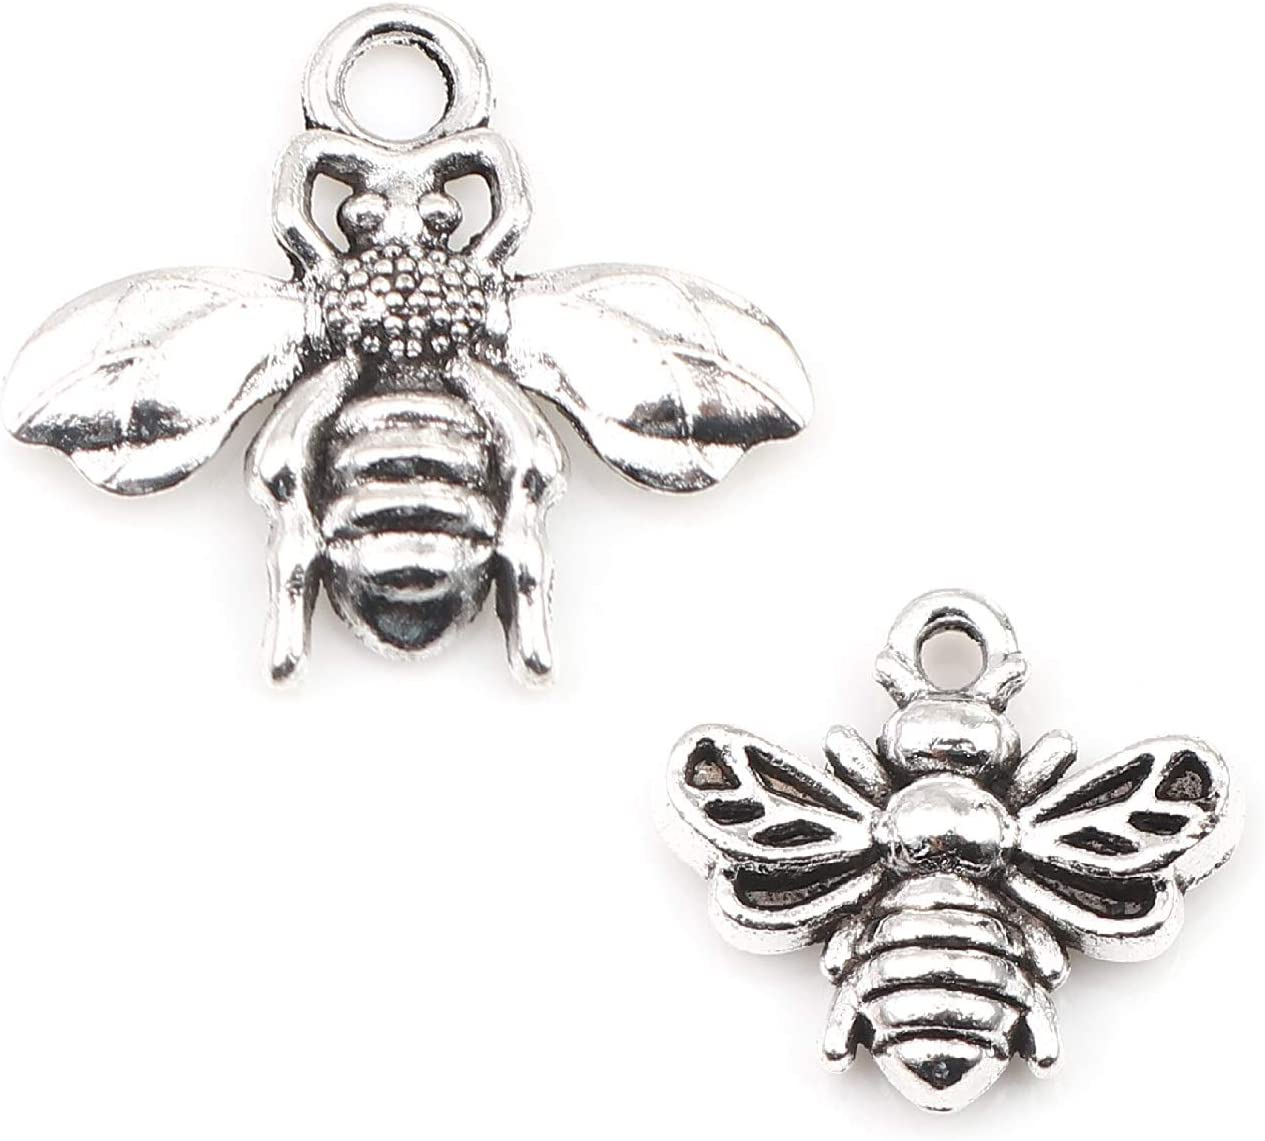 95 Pack with 1.3mm Hole Bumble Bees Spacer Bead Animal Charms